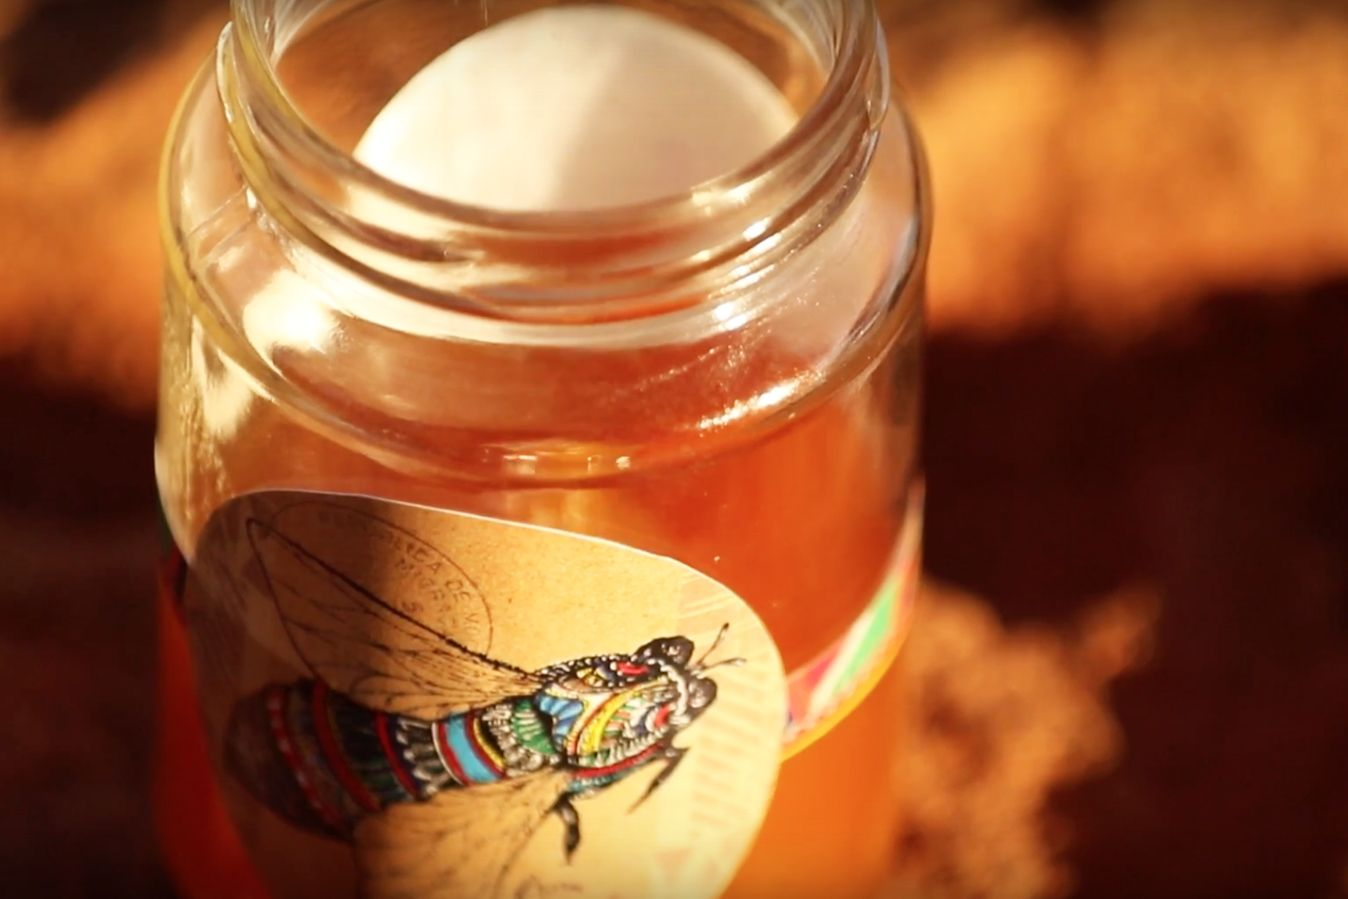 Honey produced by APW's Women's Beekeeping Initiative is sold under the Mama Asali brand